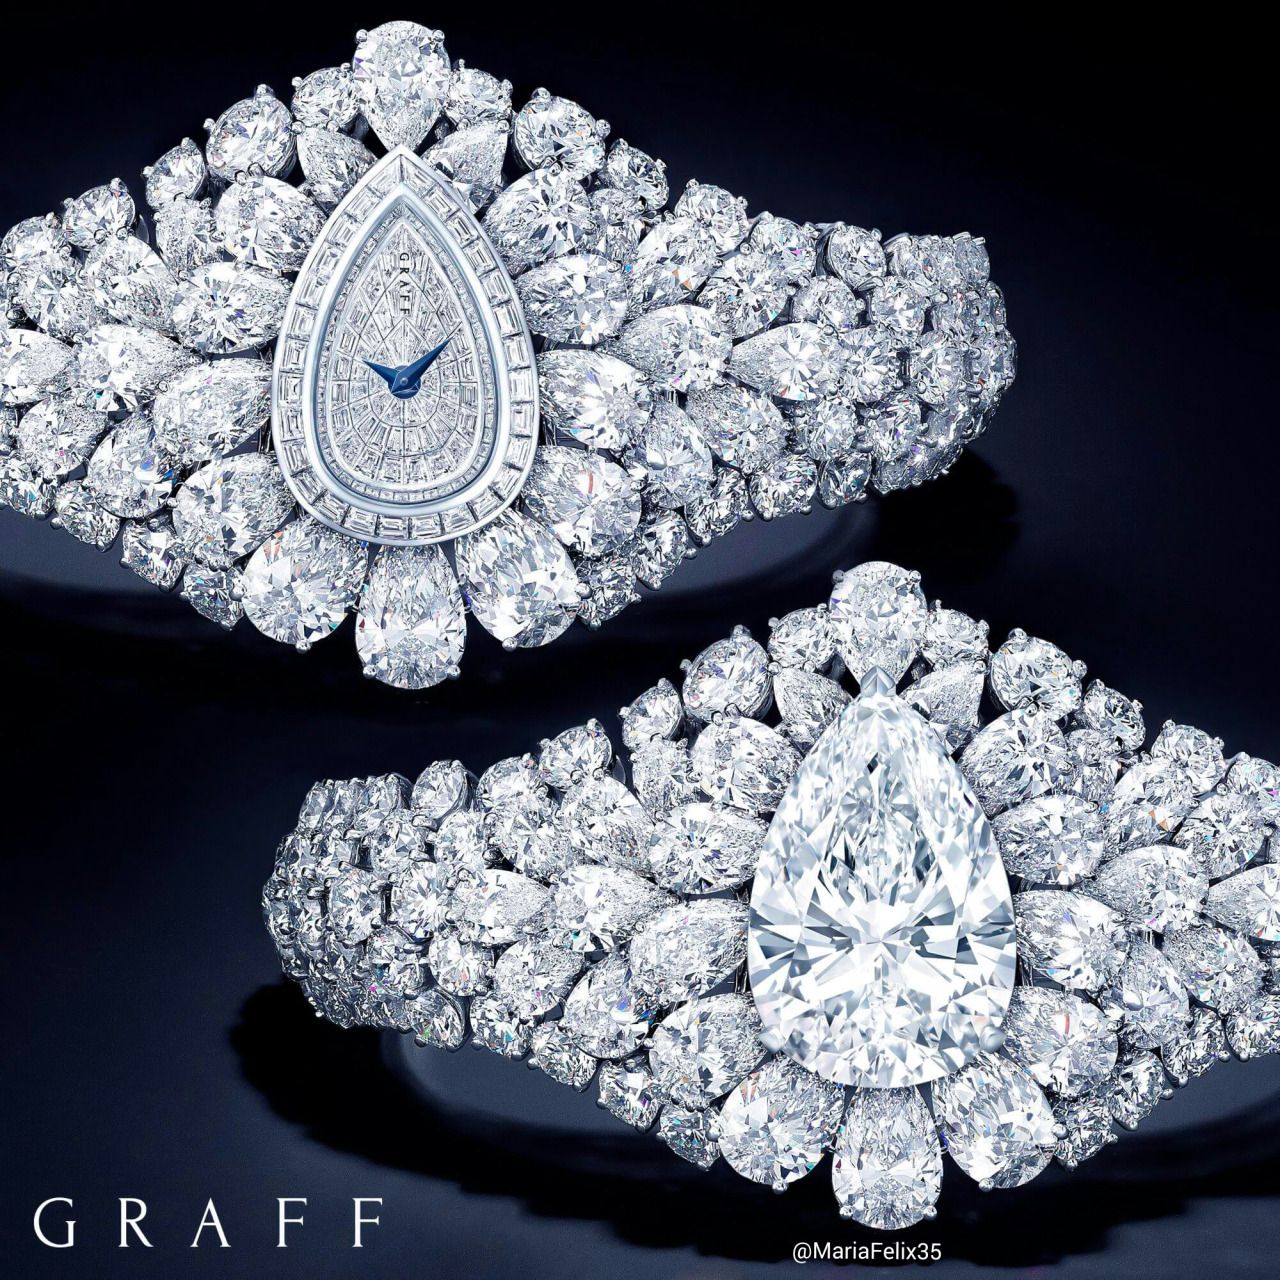 Graff Diamonds The Fascination